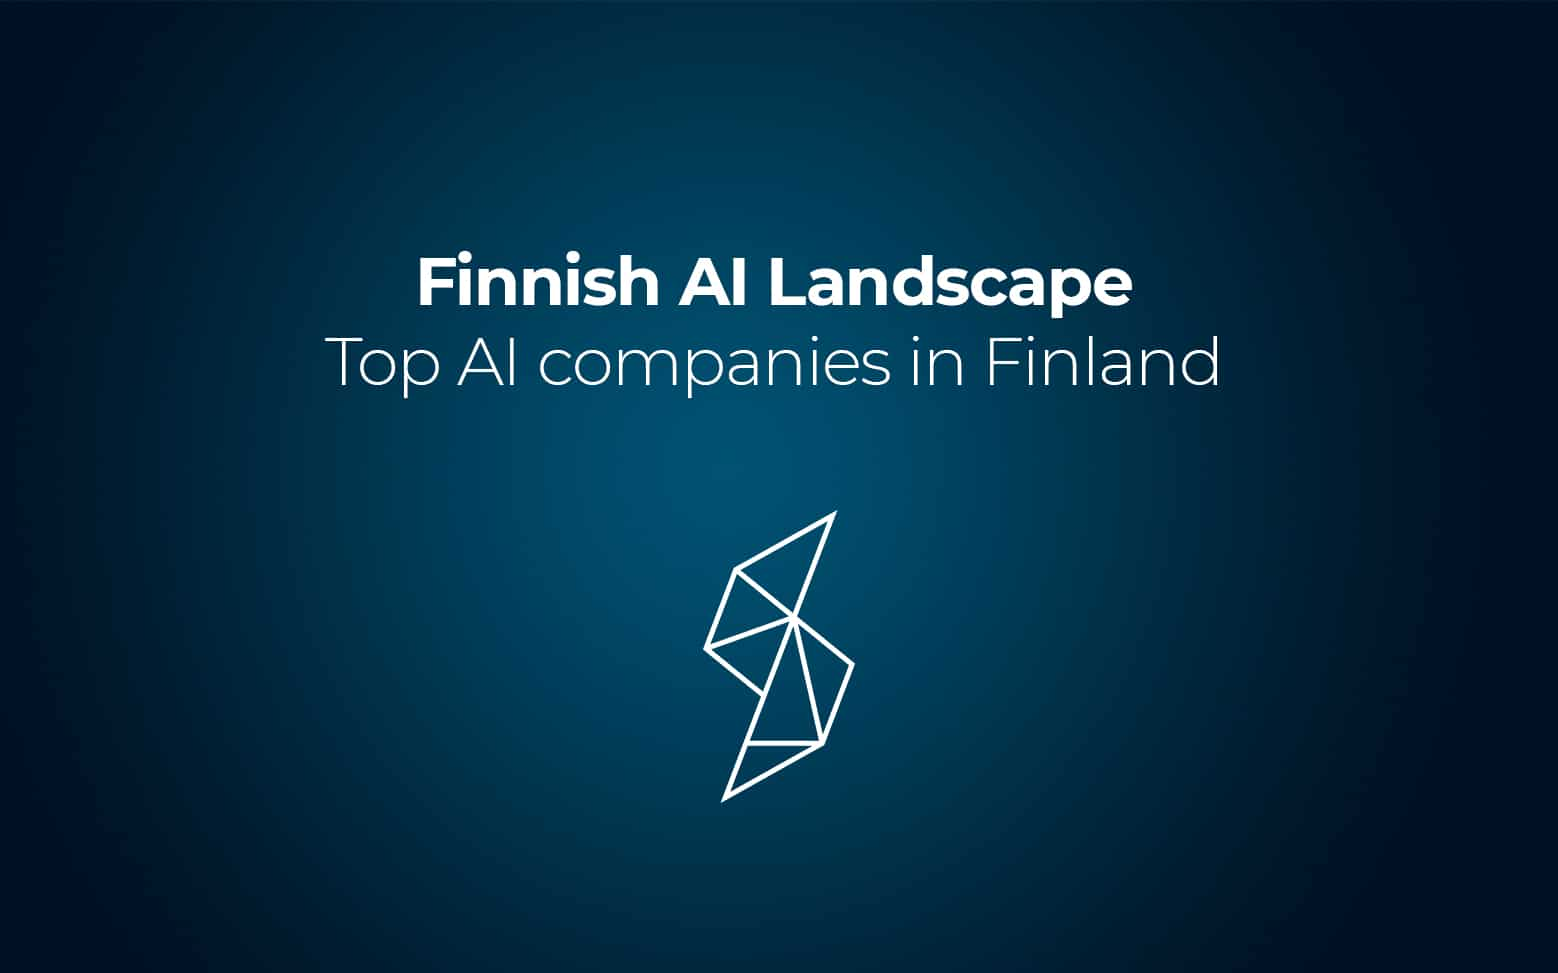 Silo.AI selected as one of the Top AI companies in Finland